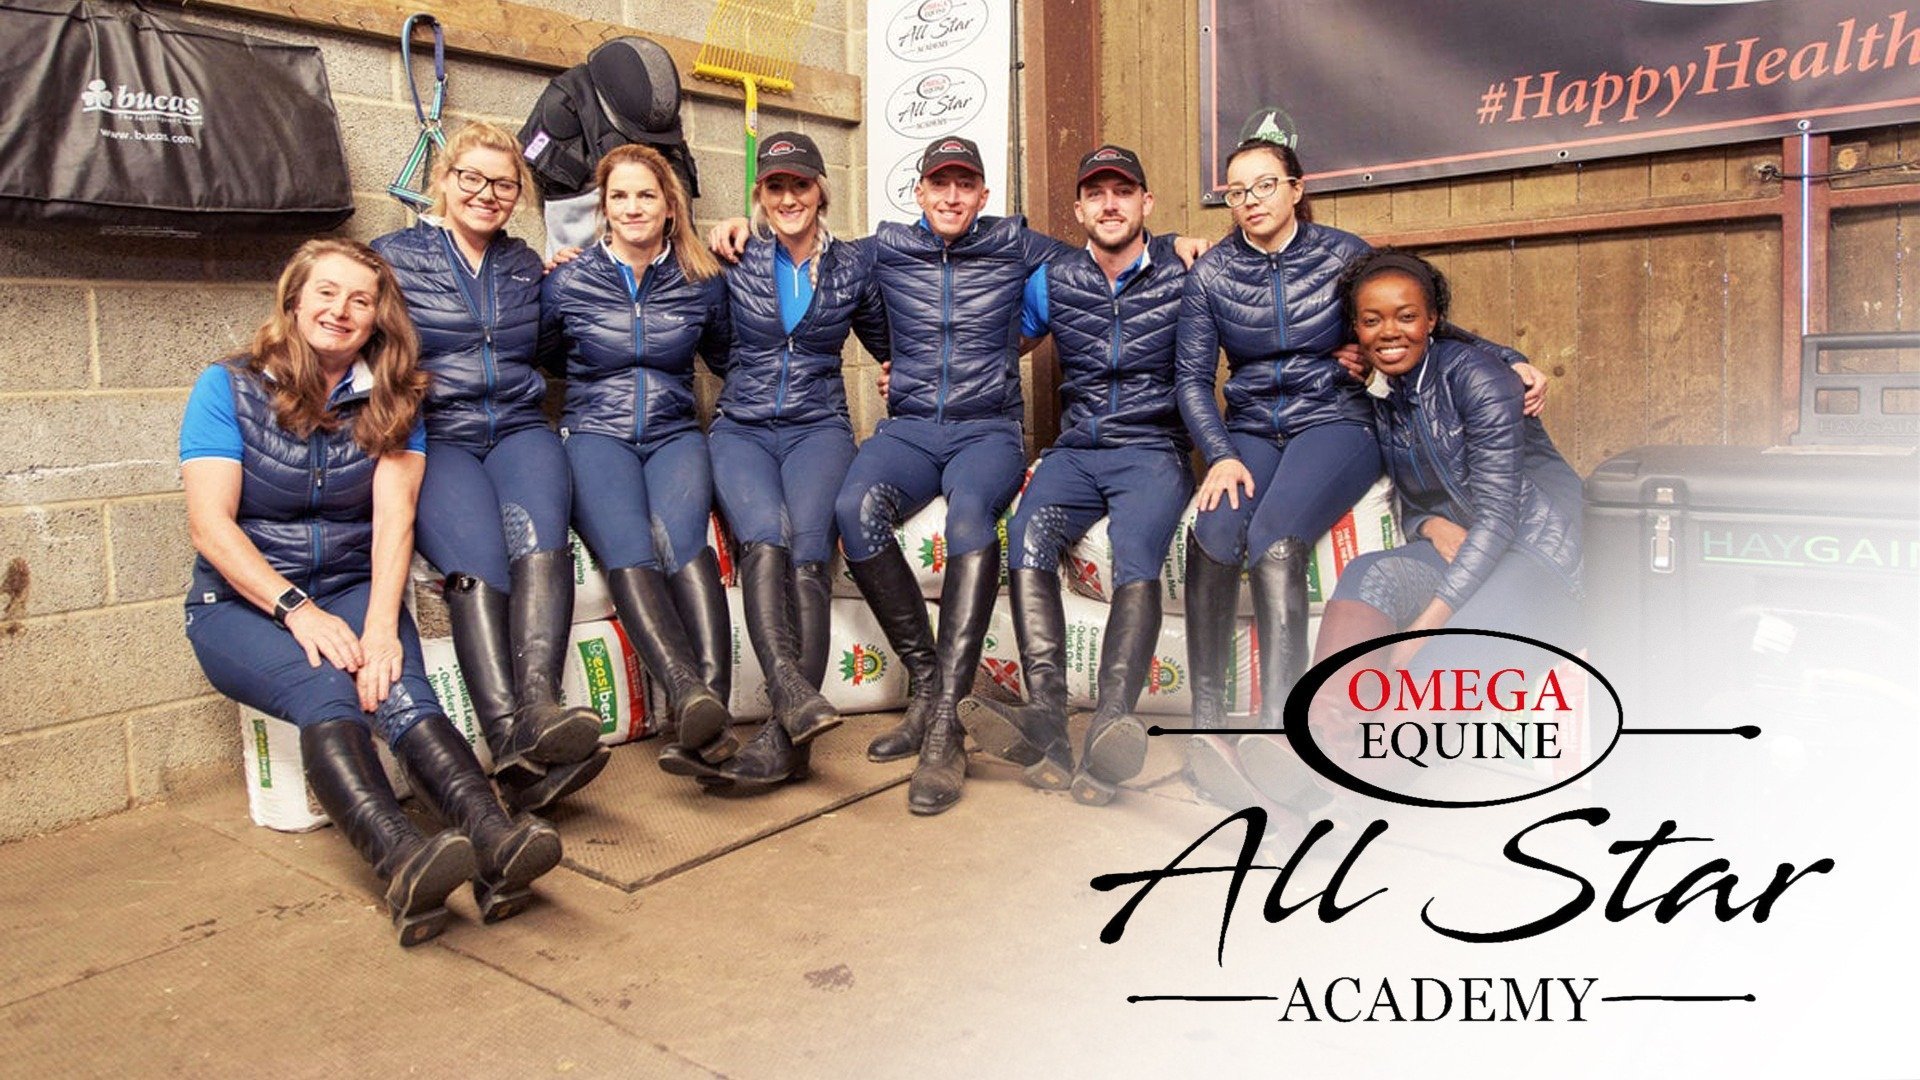 Omega Equine All Star Academy